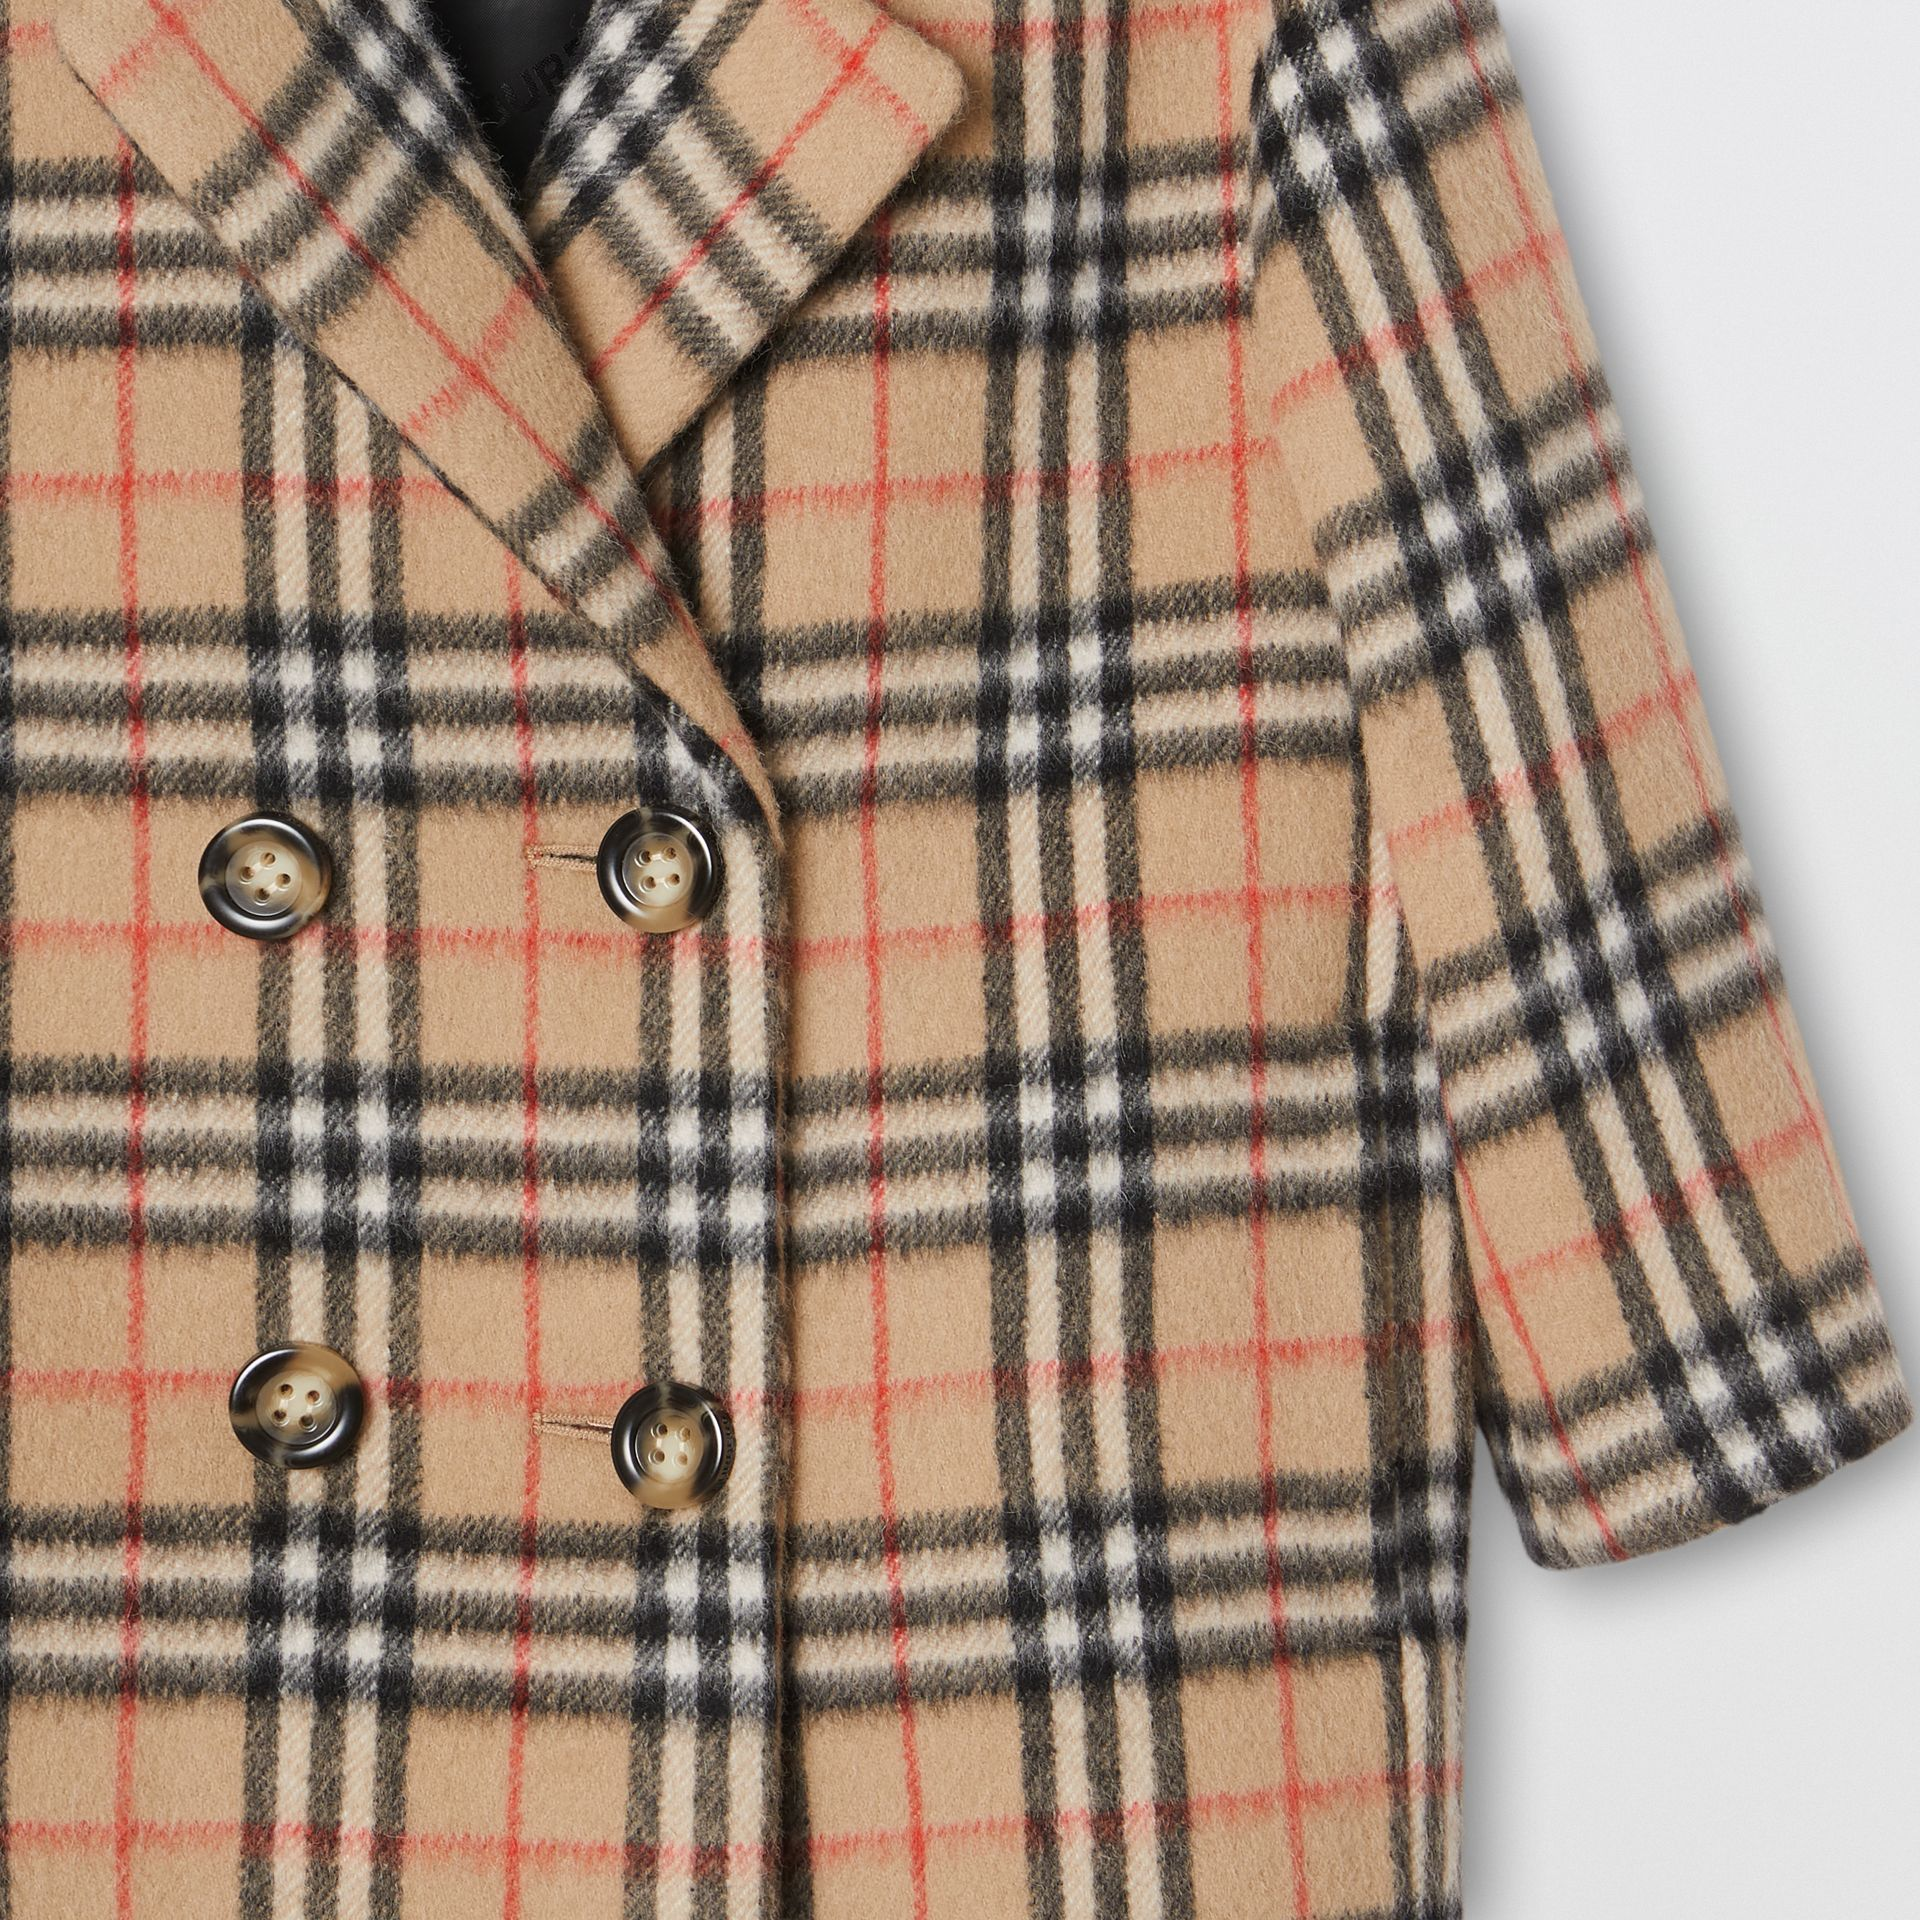 Vintage Check Alpaca Wool Blend Pea Coat in Archive Beige | Burberry - gallery image 4